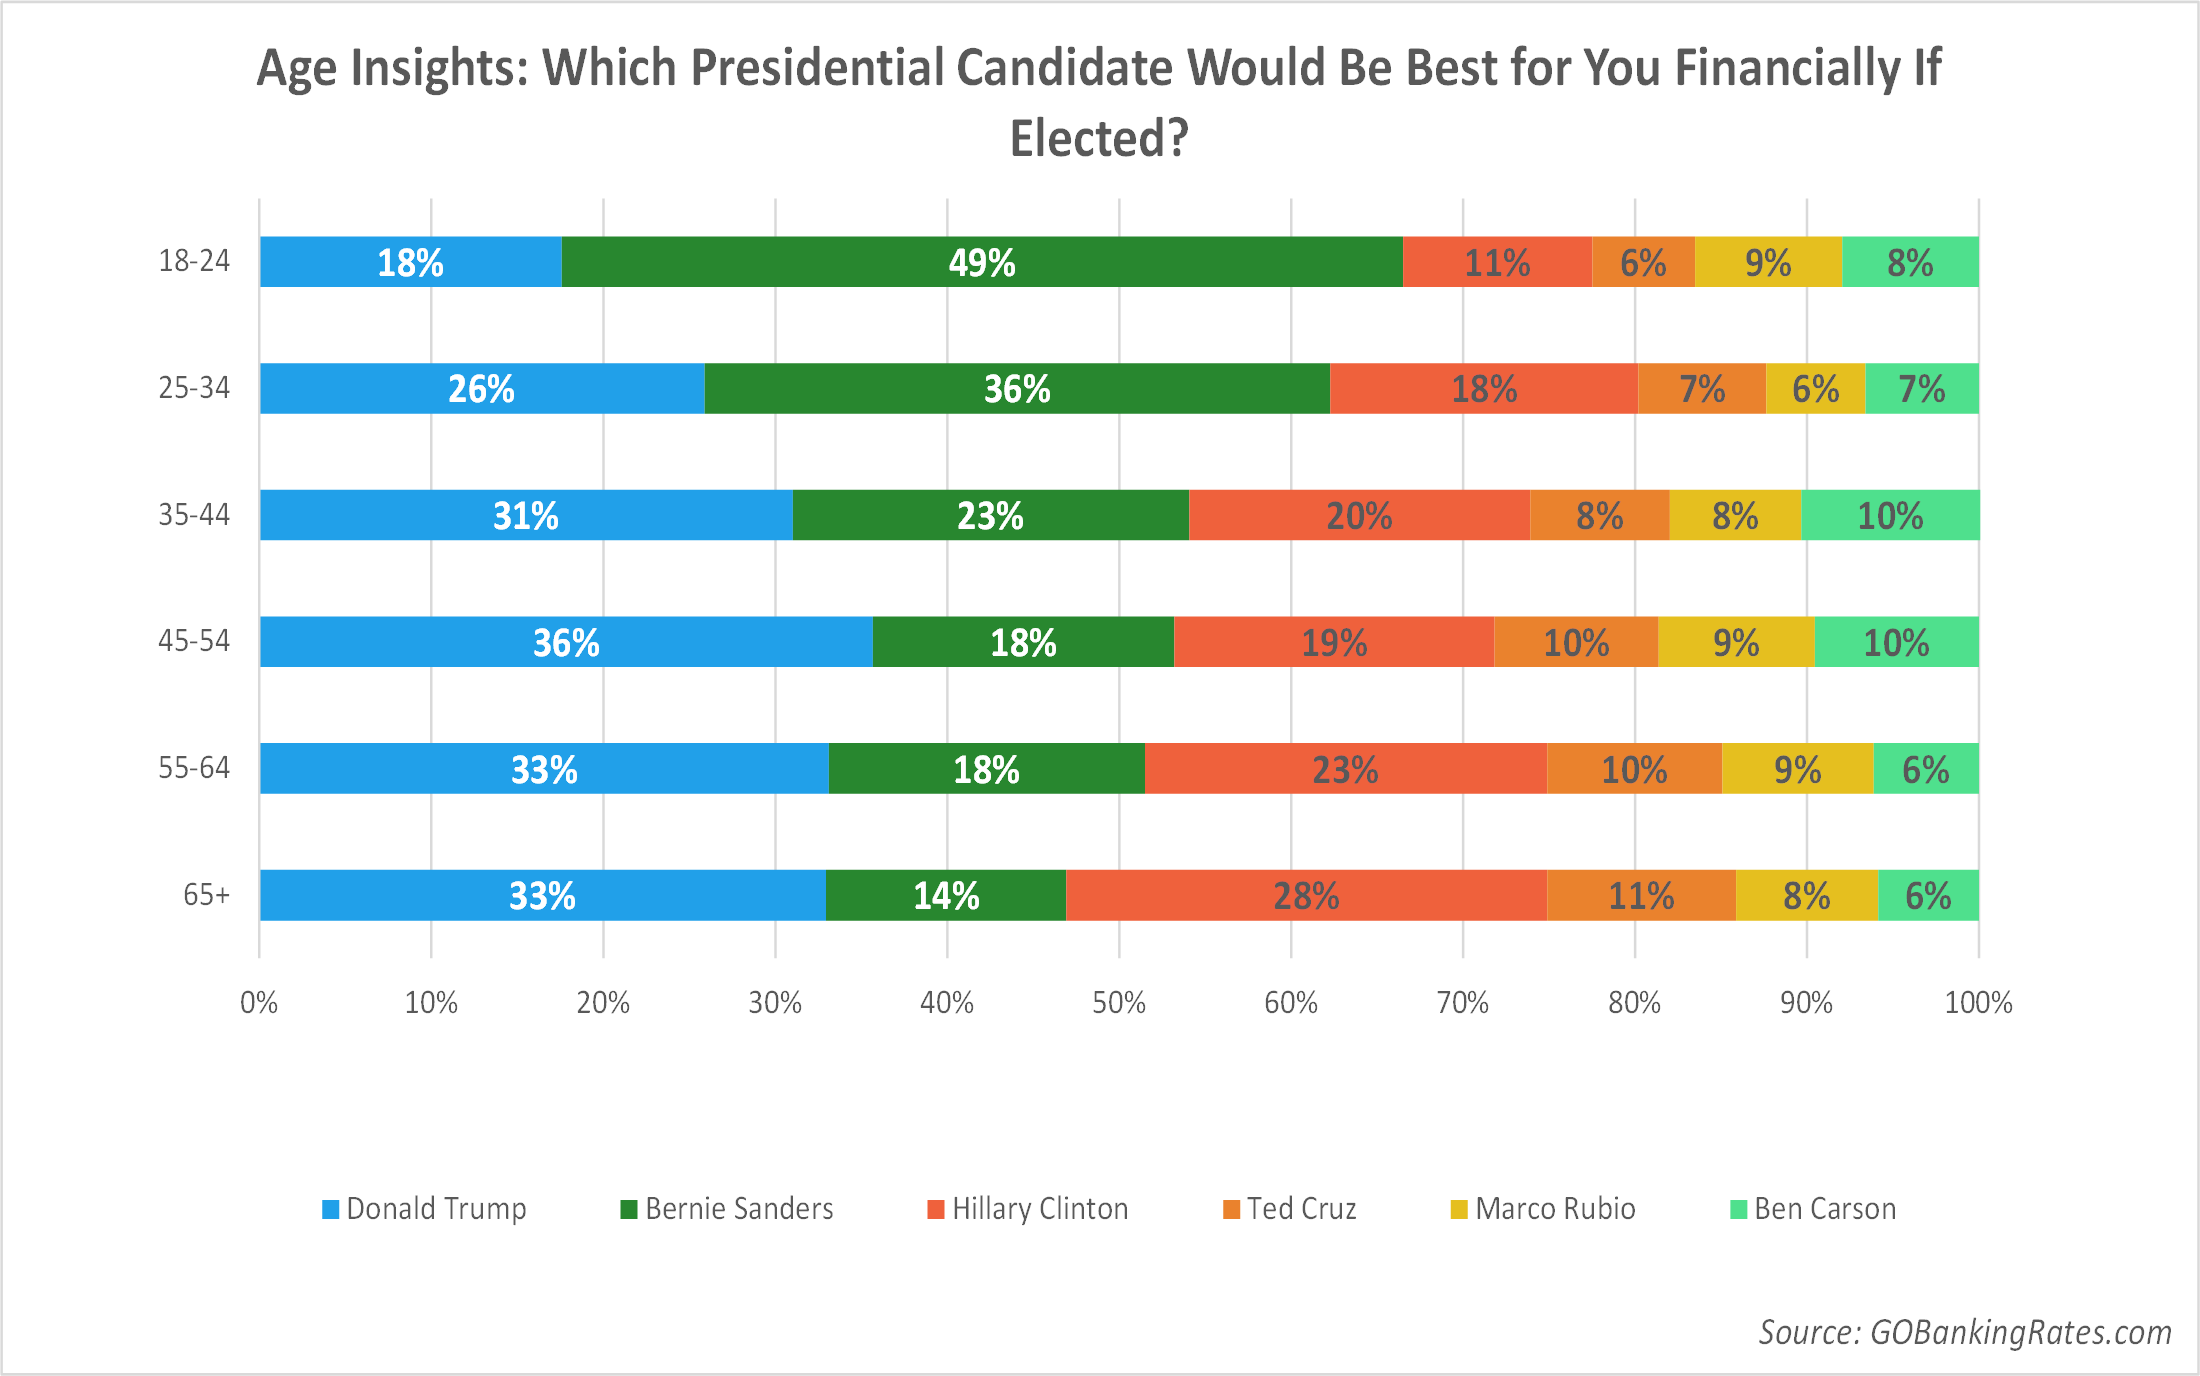 Age Insights: Which Presidential Candidate Would Be Best for You Financially If Elected?